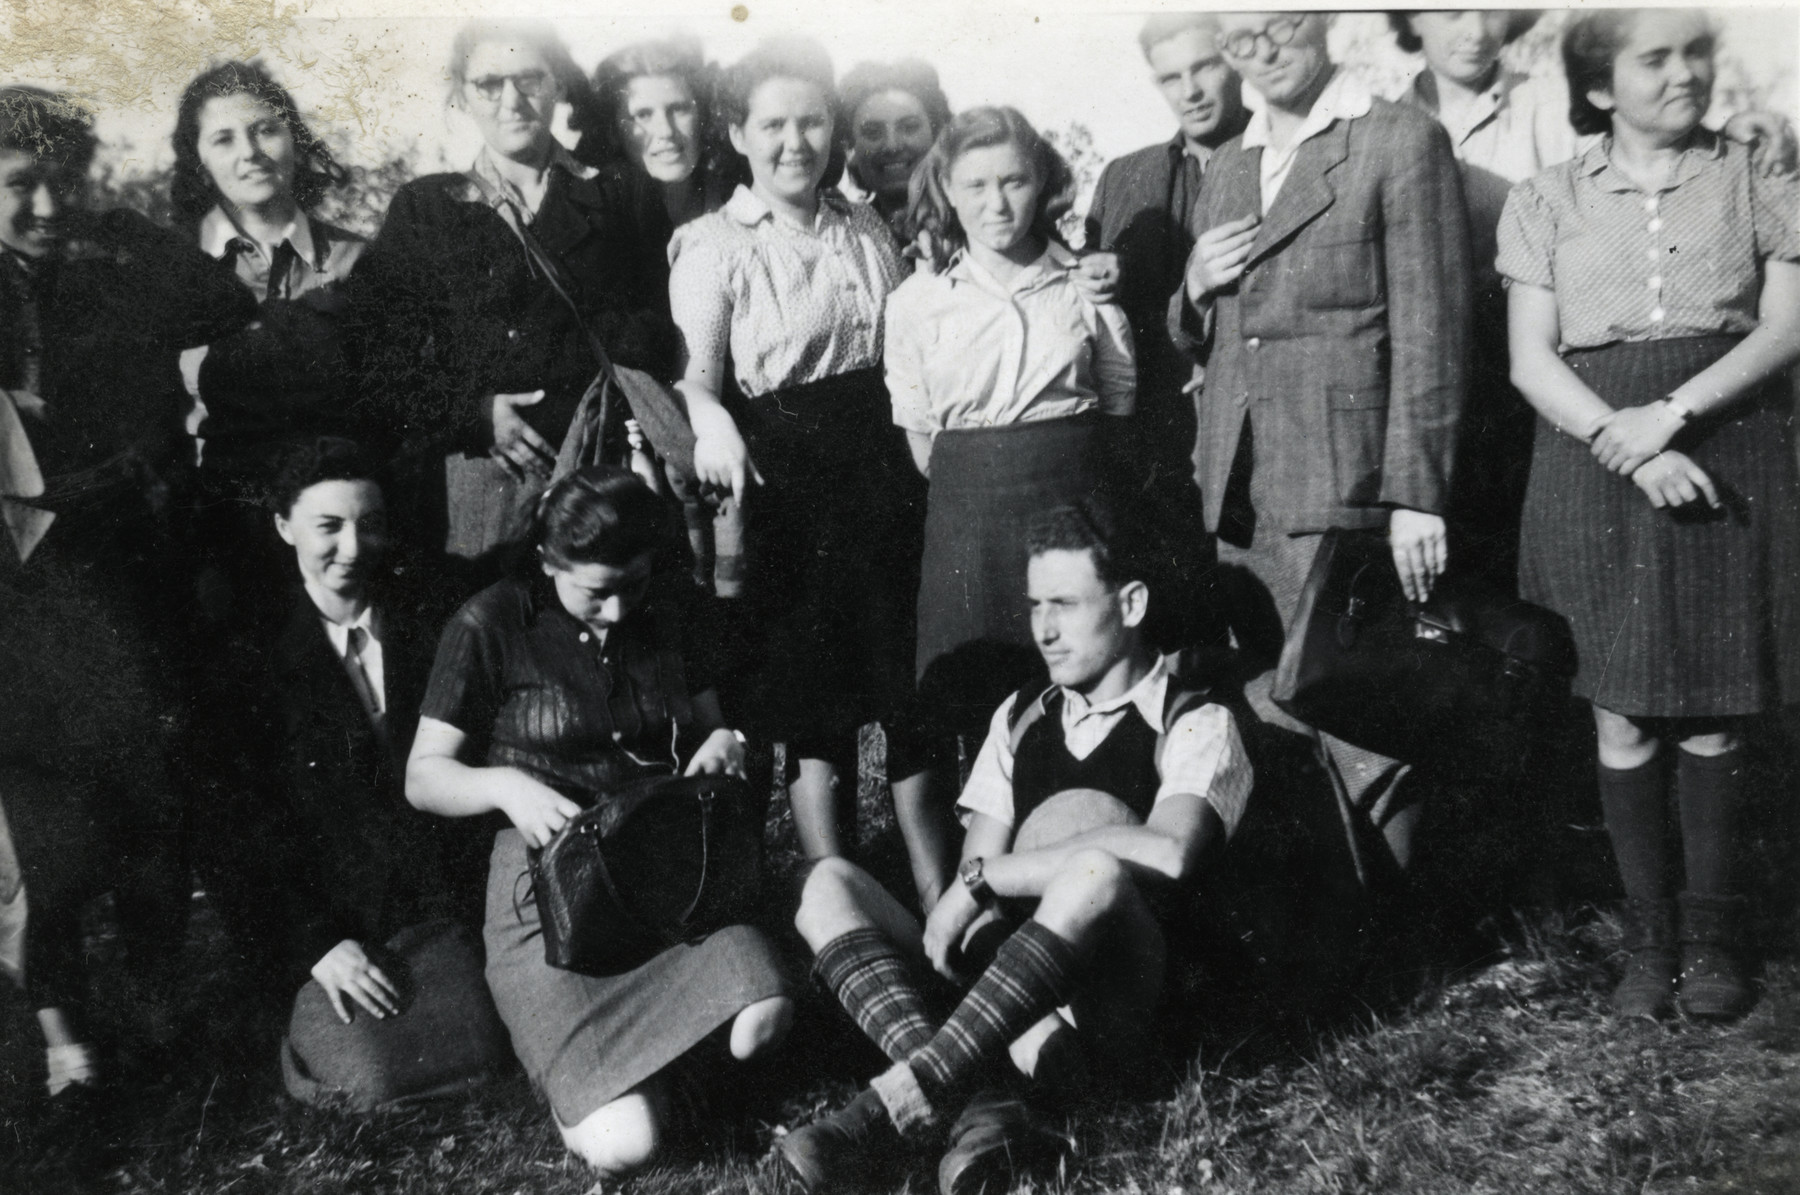 Zionist youth gather at a Shomer Hatzair summer camp in Budapest.  Esther Schaechter is fourth from the left in the back row.